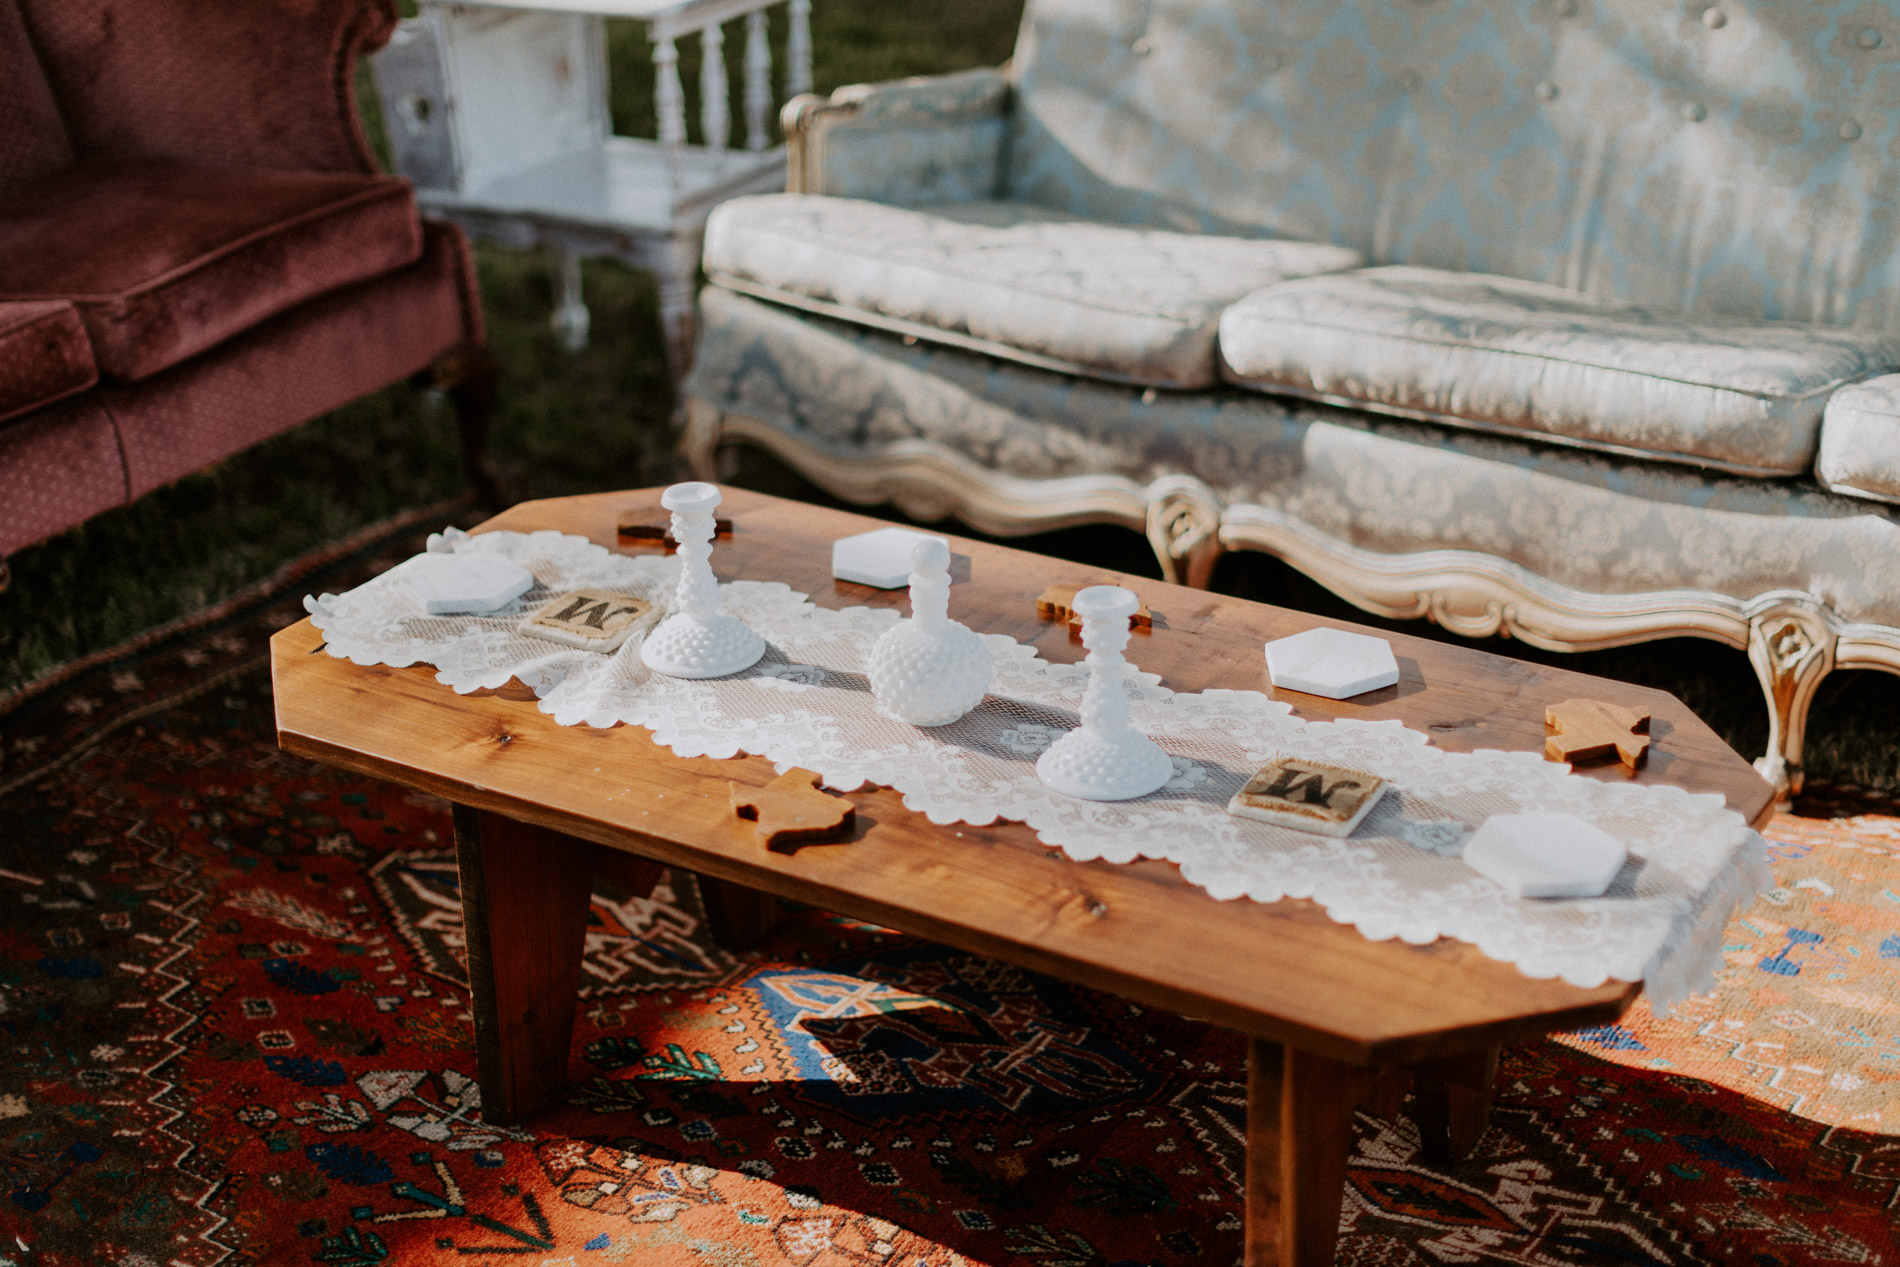 Vintage wedding decor in East Texas